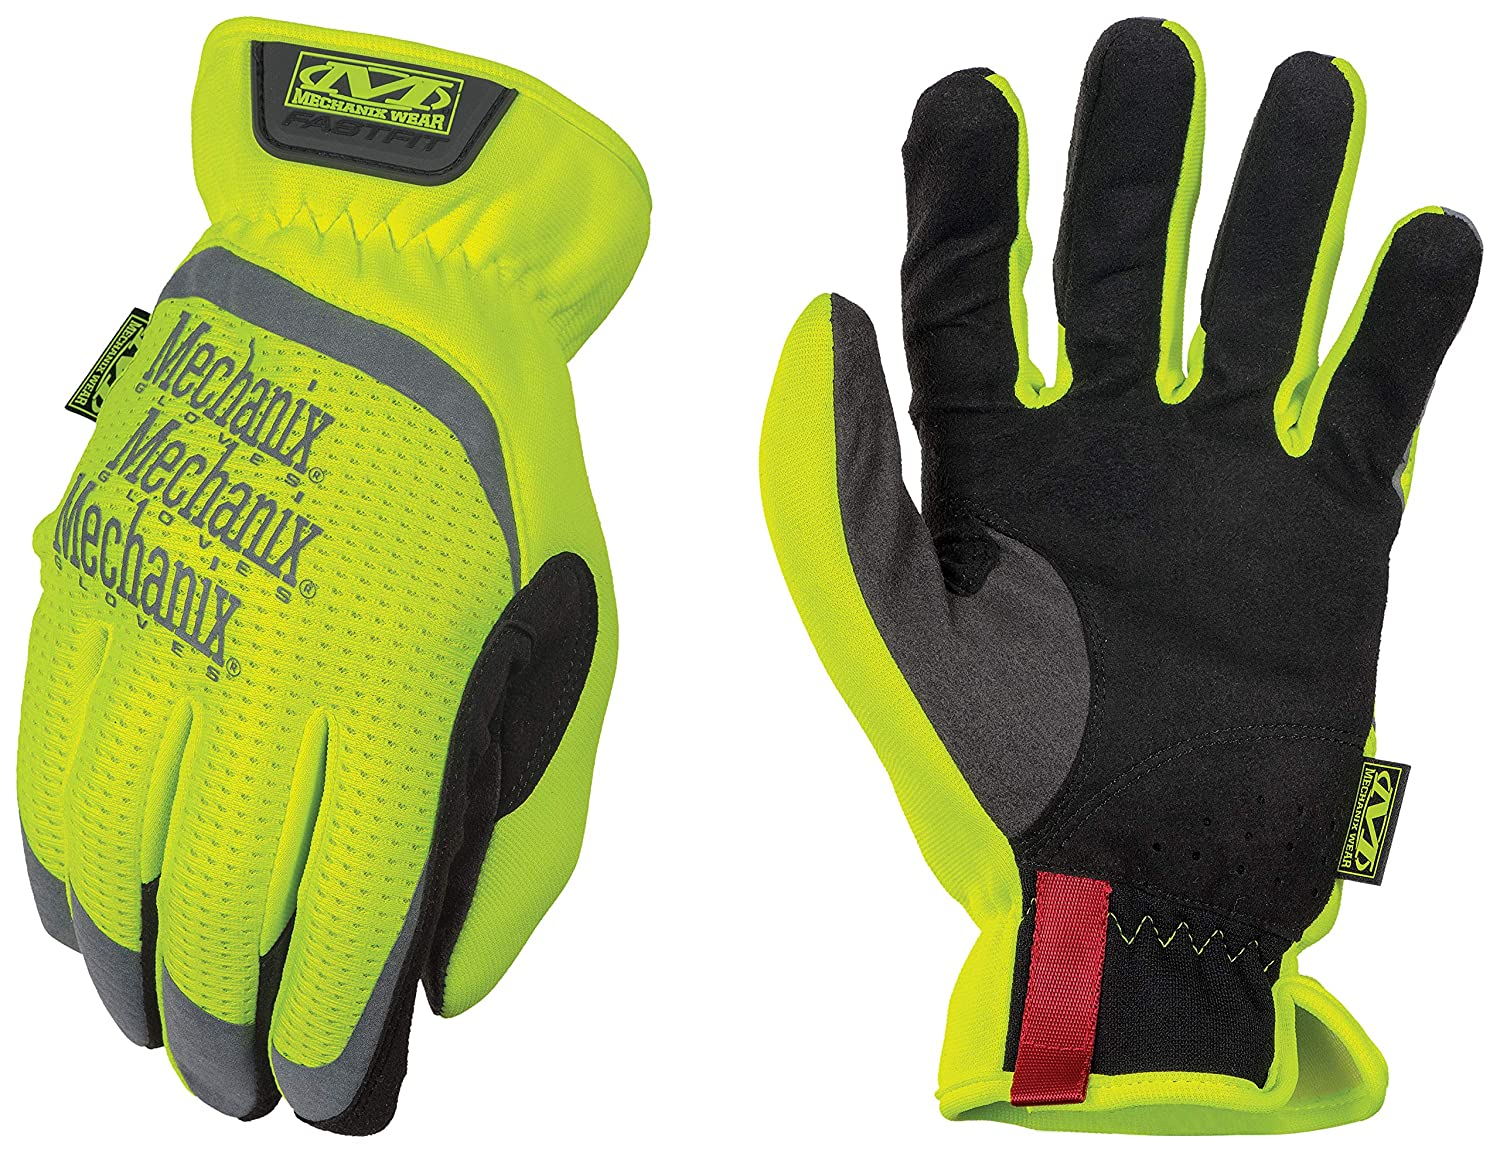 Mechanix Wear - Hi-Viz FastFit Gloves (Medium, Fluorescent Yellow) SFF-91-009